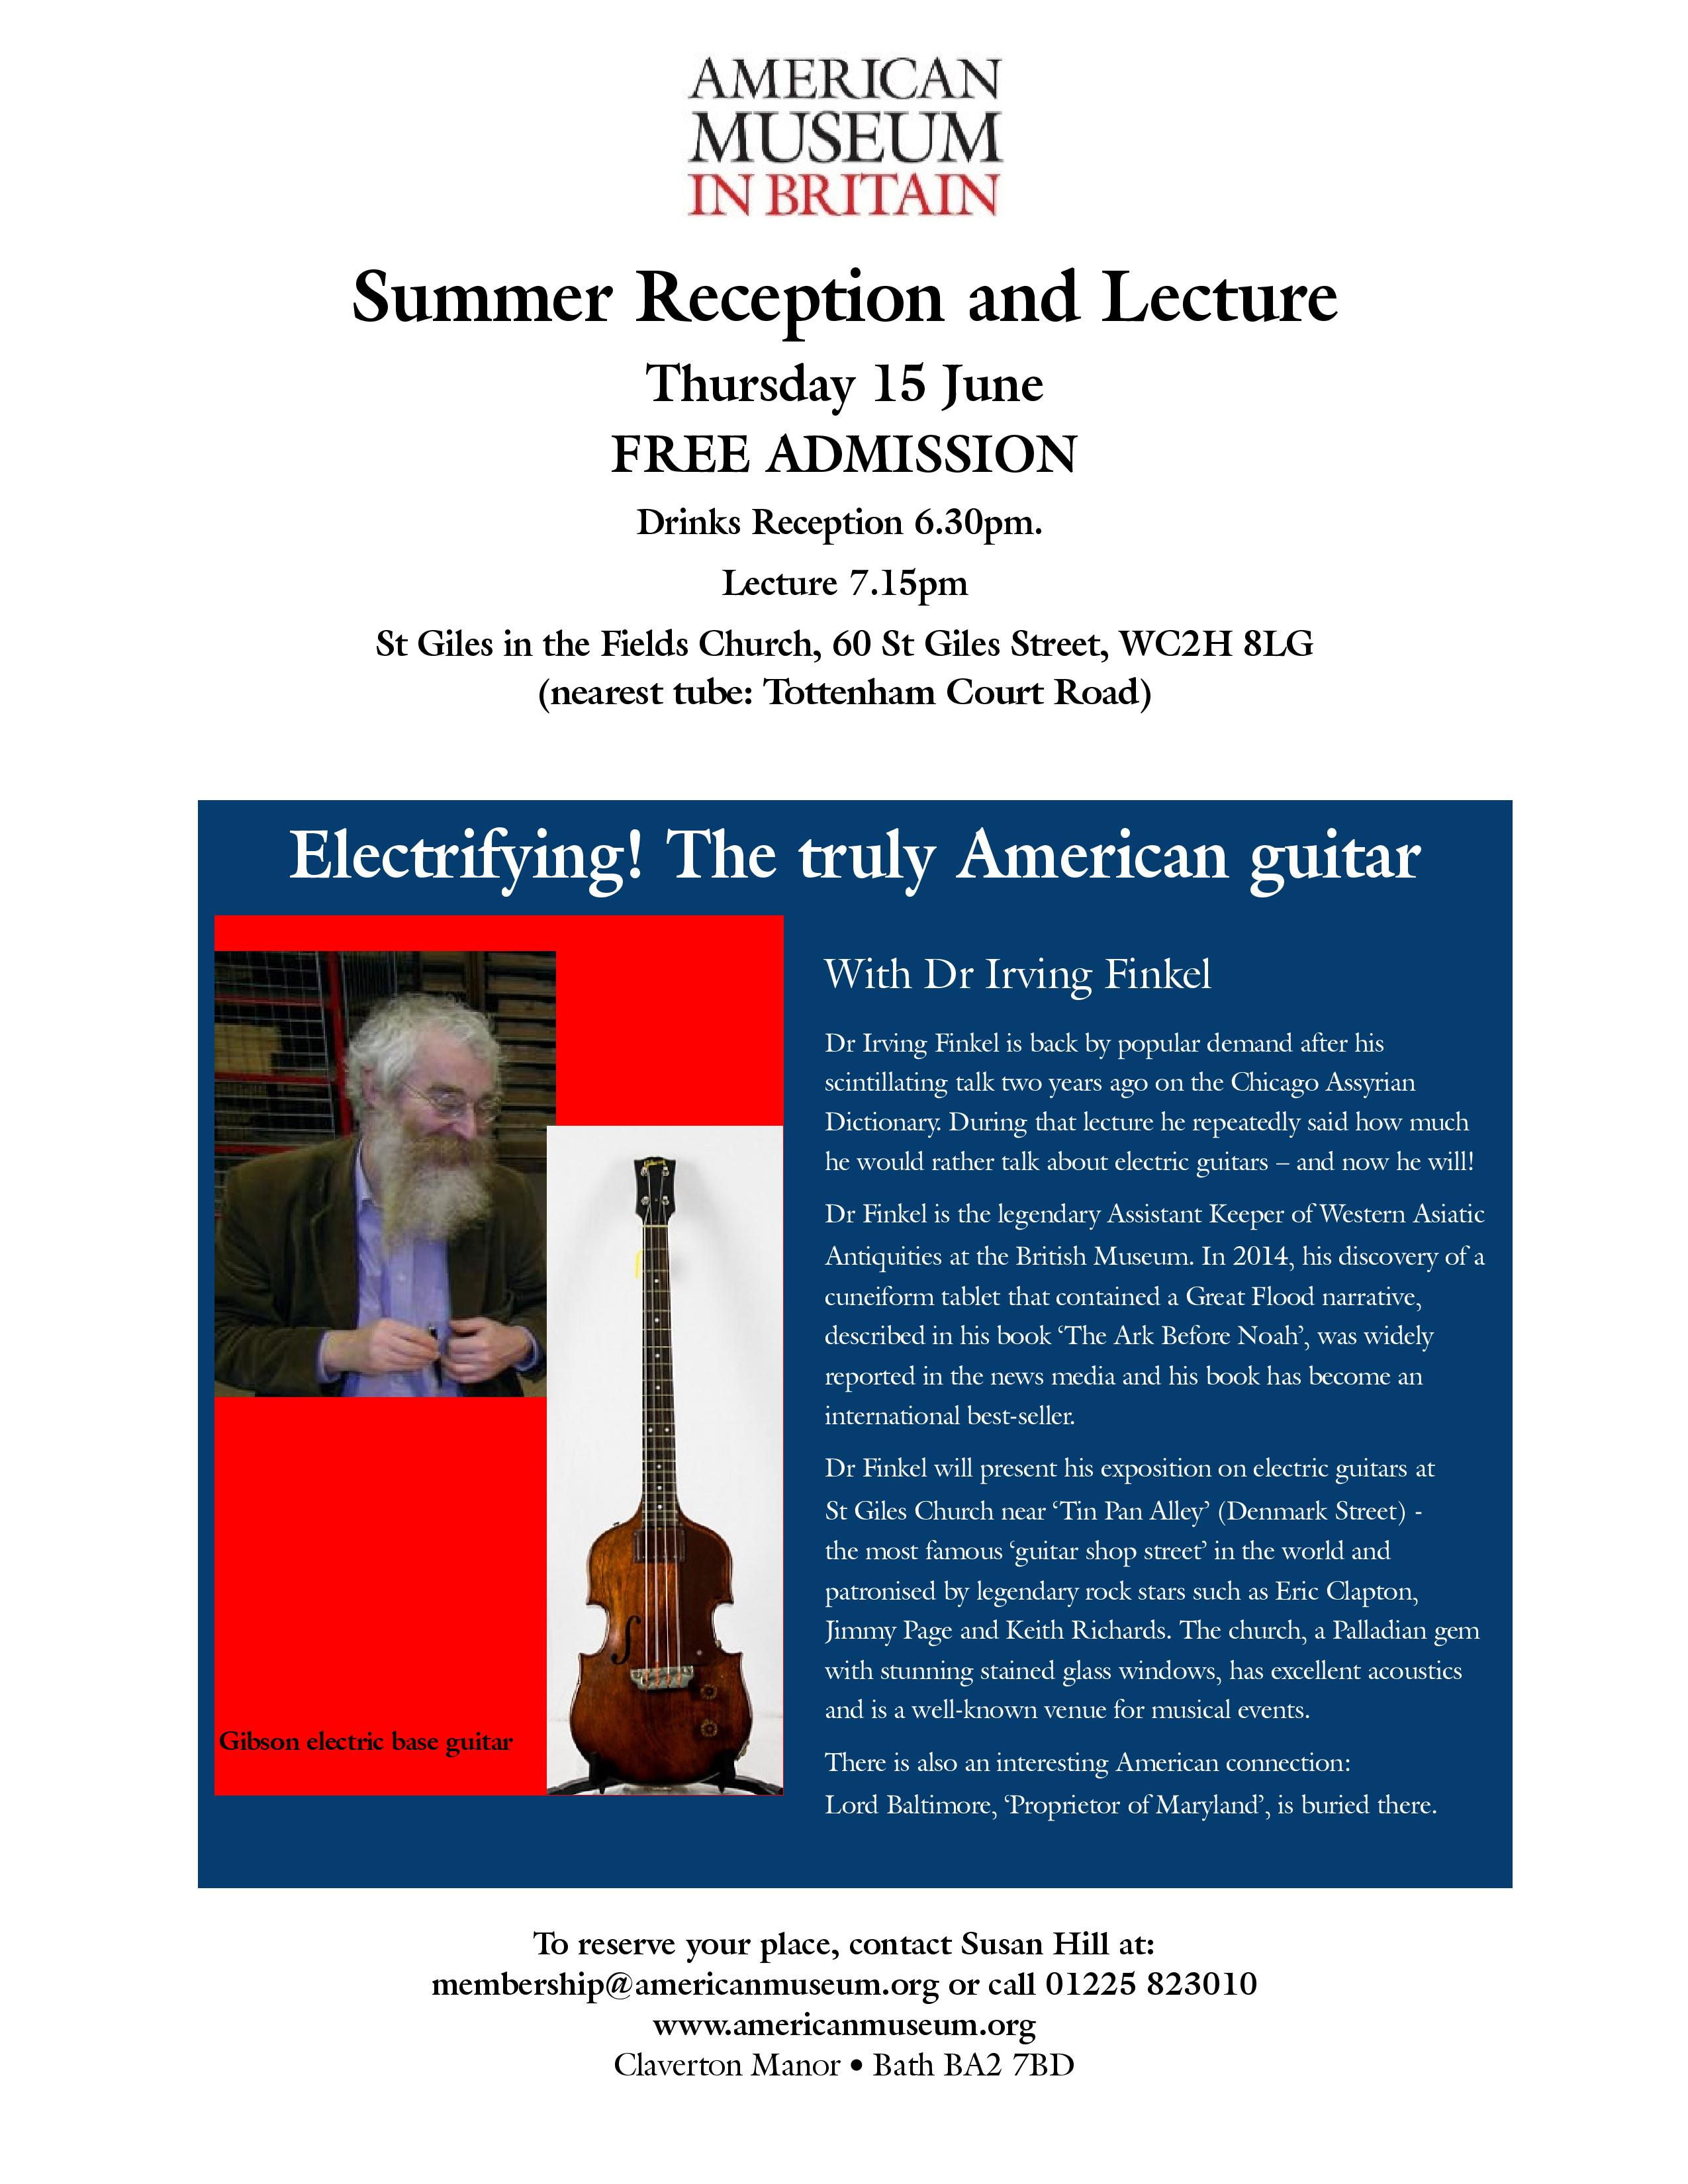 amib-summer-reception-and-lecture--irving-finkel-15-june-2017-page-001